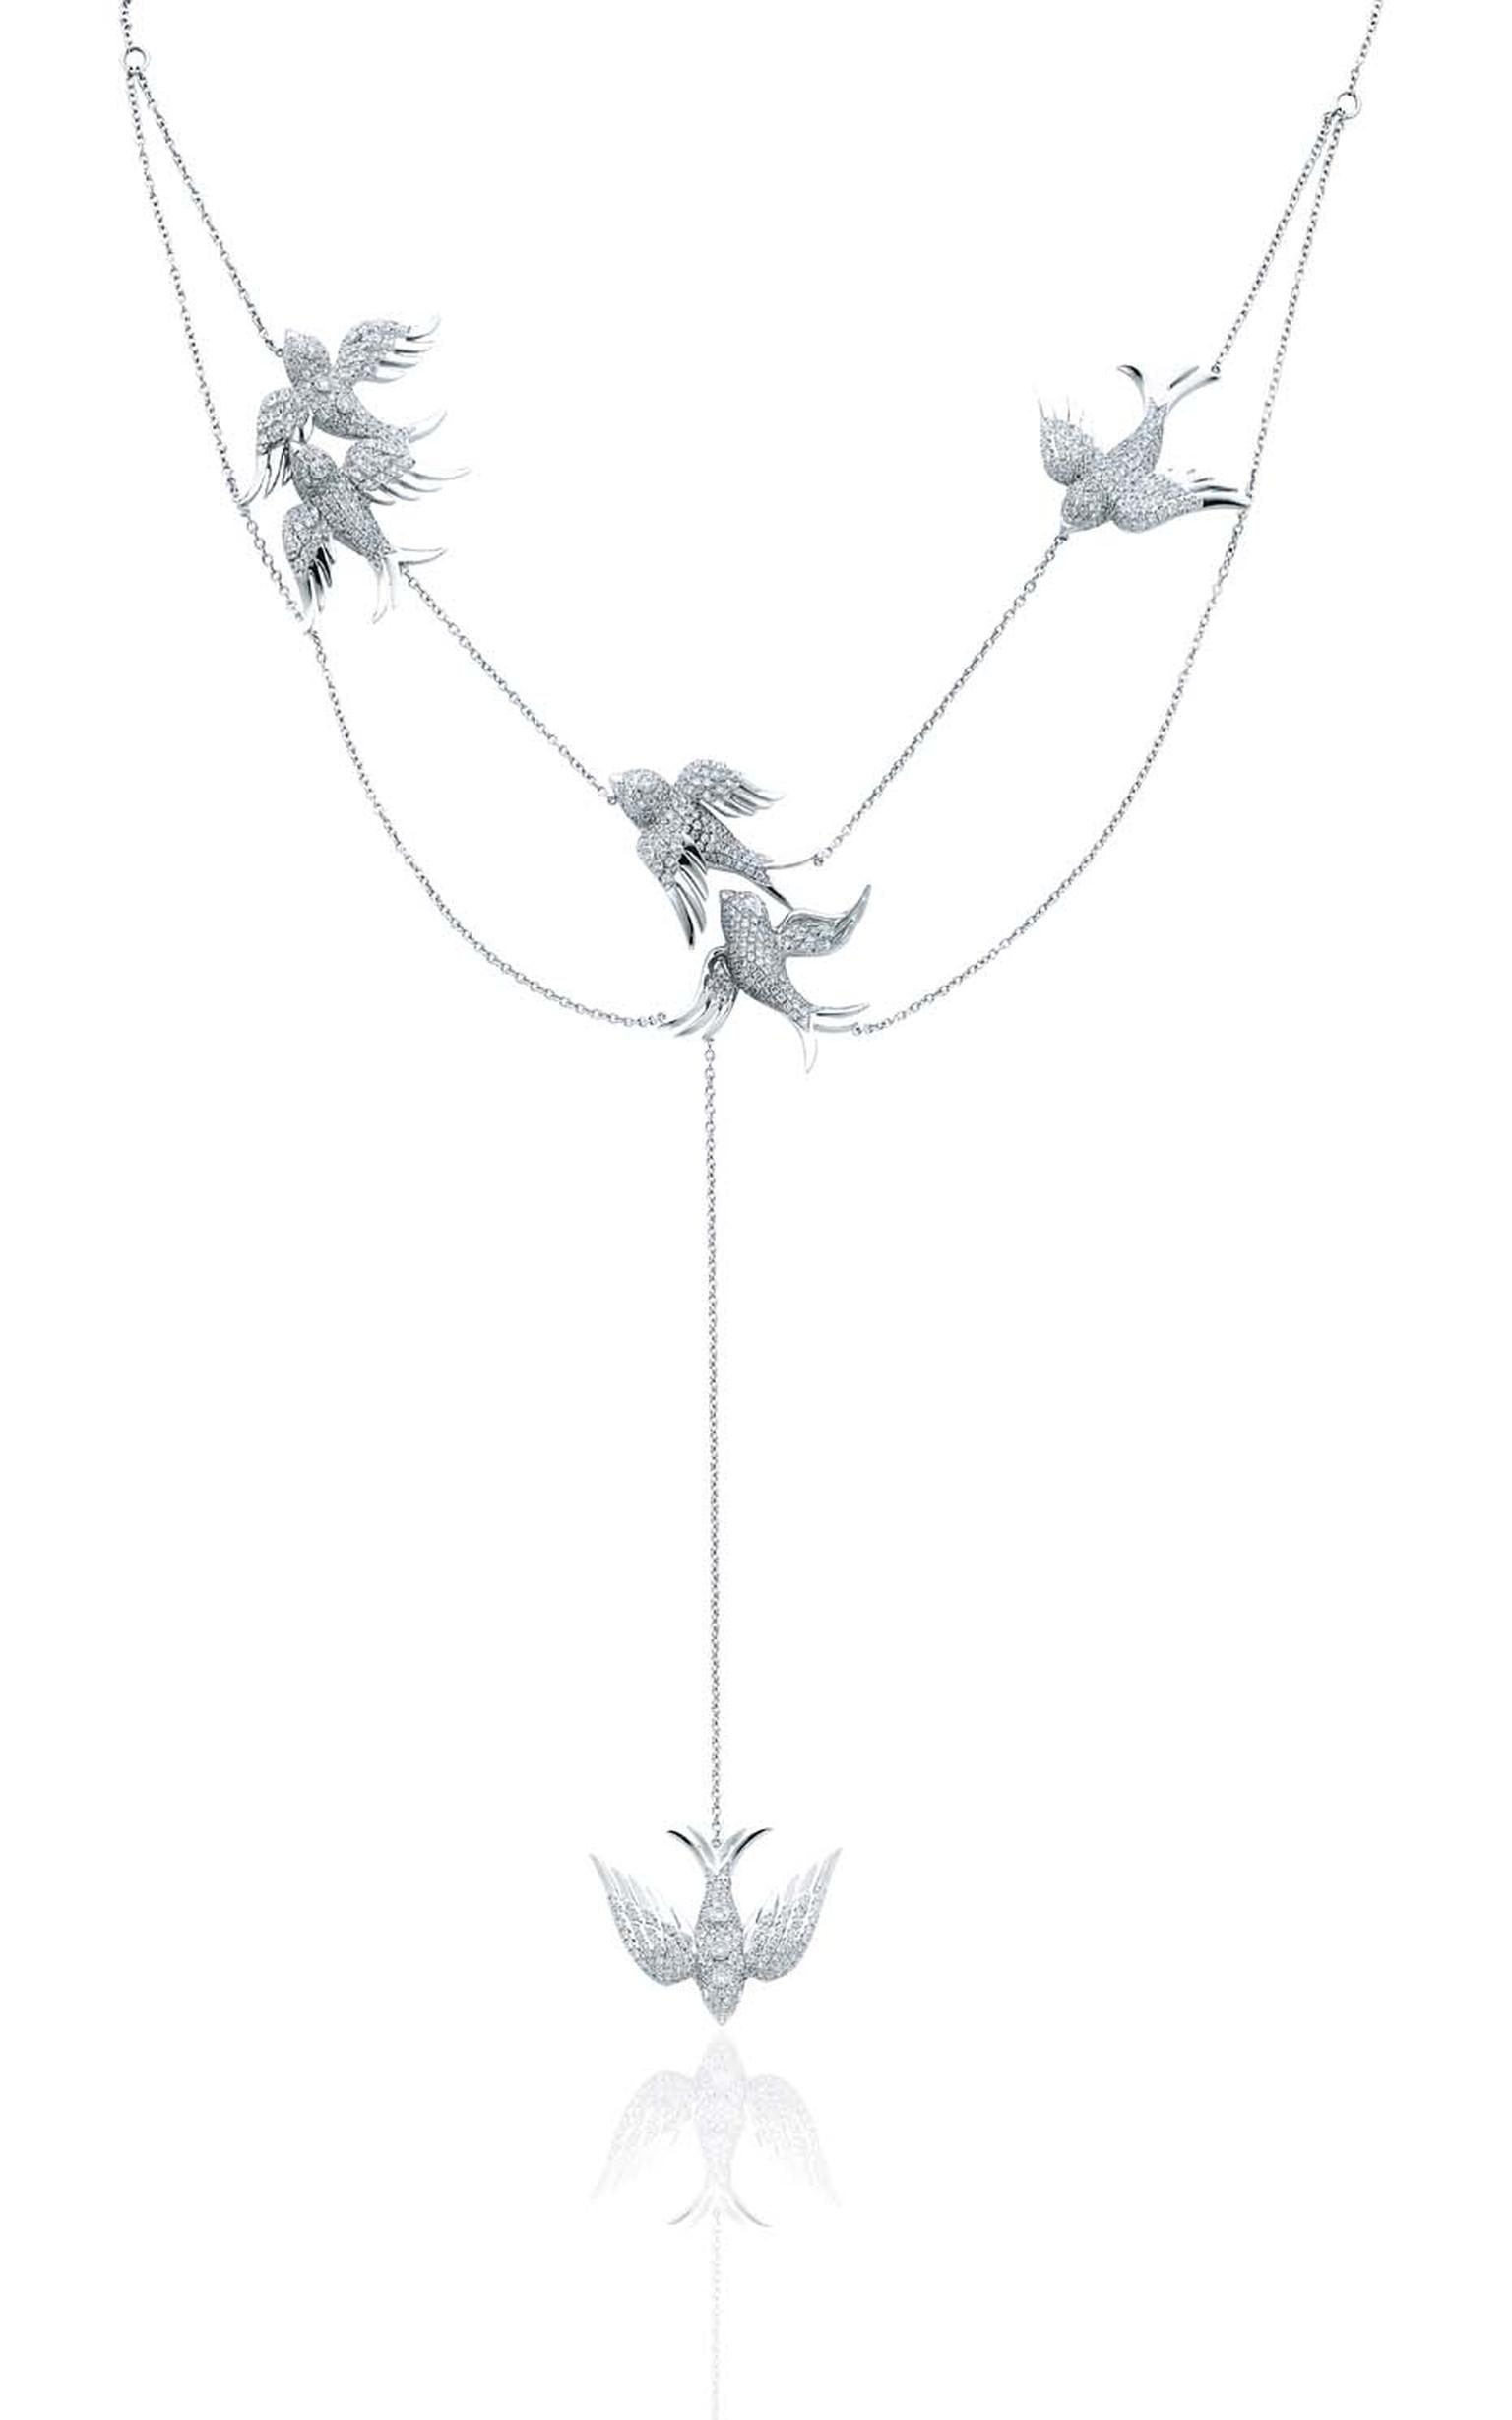 Colette Blue Drift white gold Birds necklace with 5.23ct of white diamonds ($39,260).